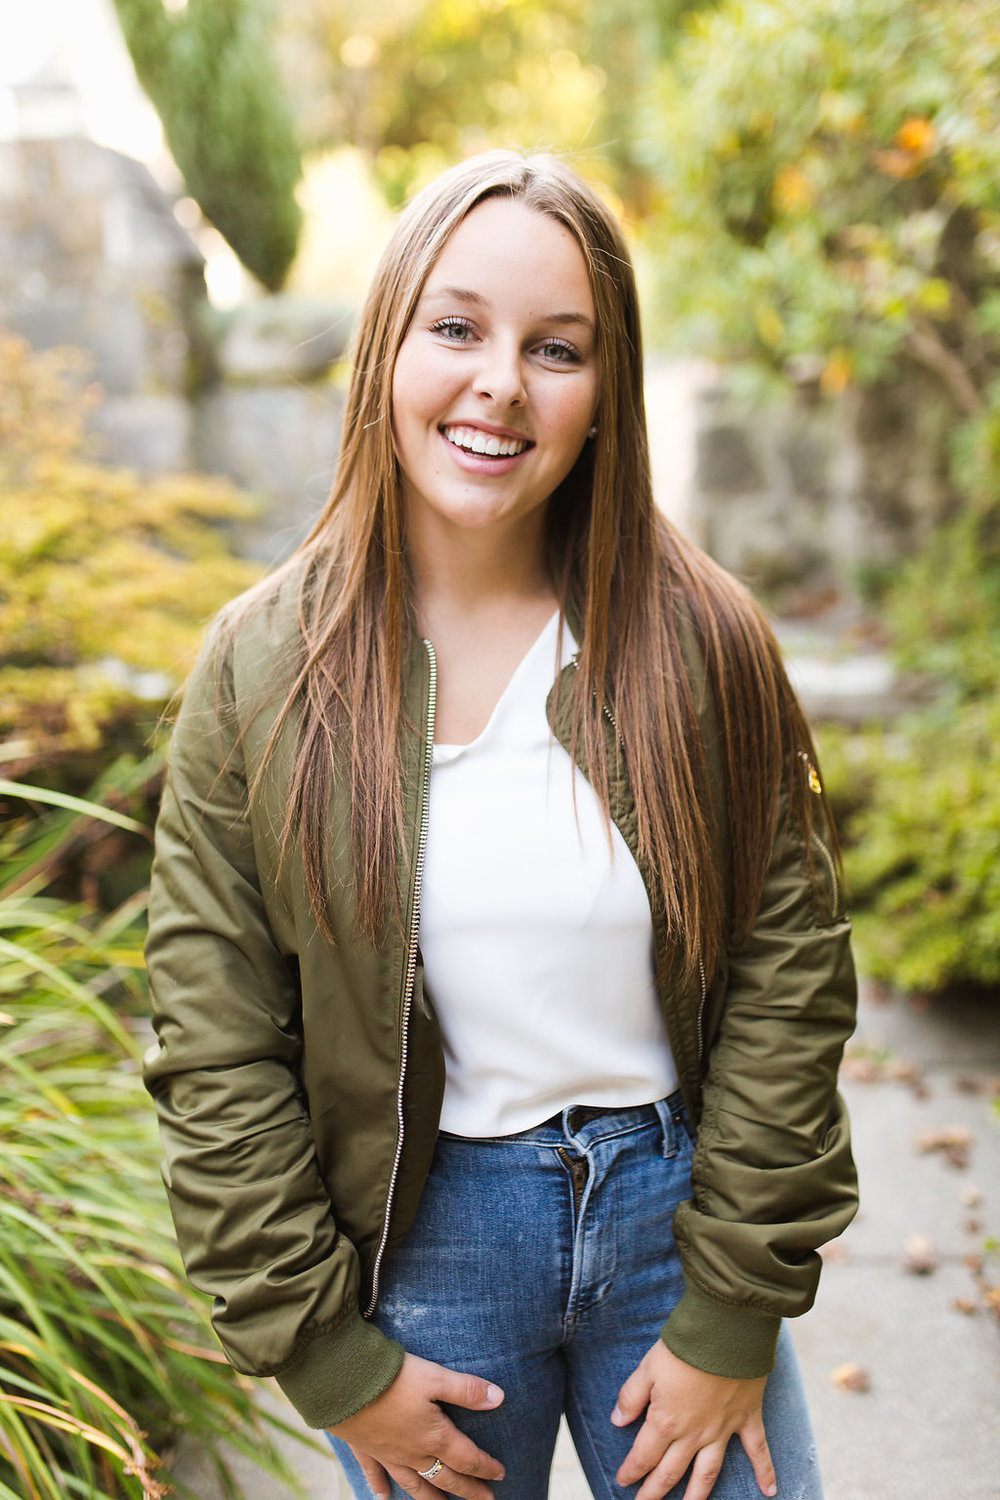 Seattle Senior Photographer | Washington Park Arboretum | Seattle Washington | Class of 2017 | Senior Posing and Styling | Fall Senior Session | What to Wear Senior Pictures